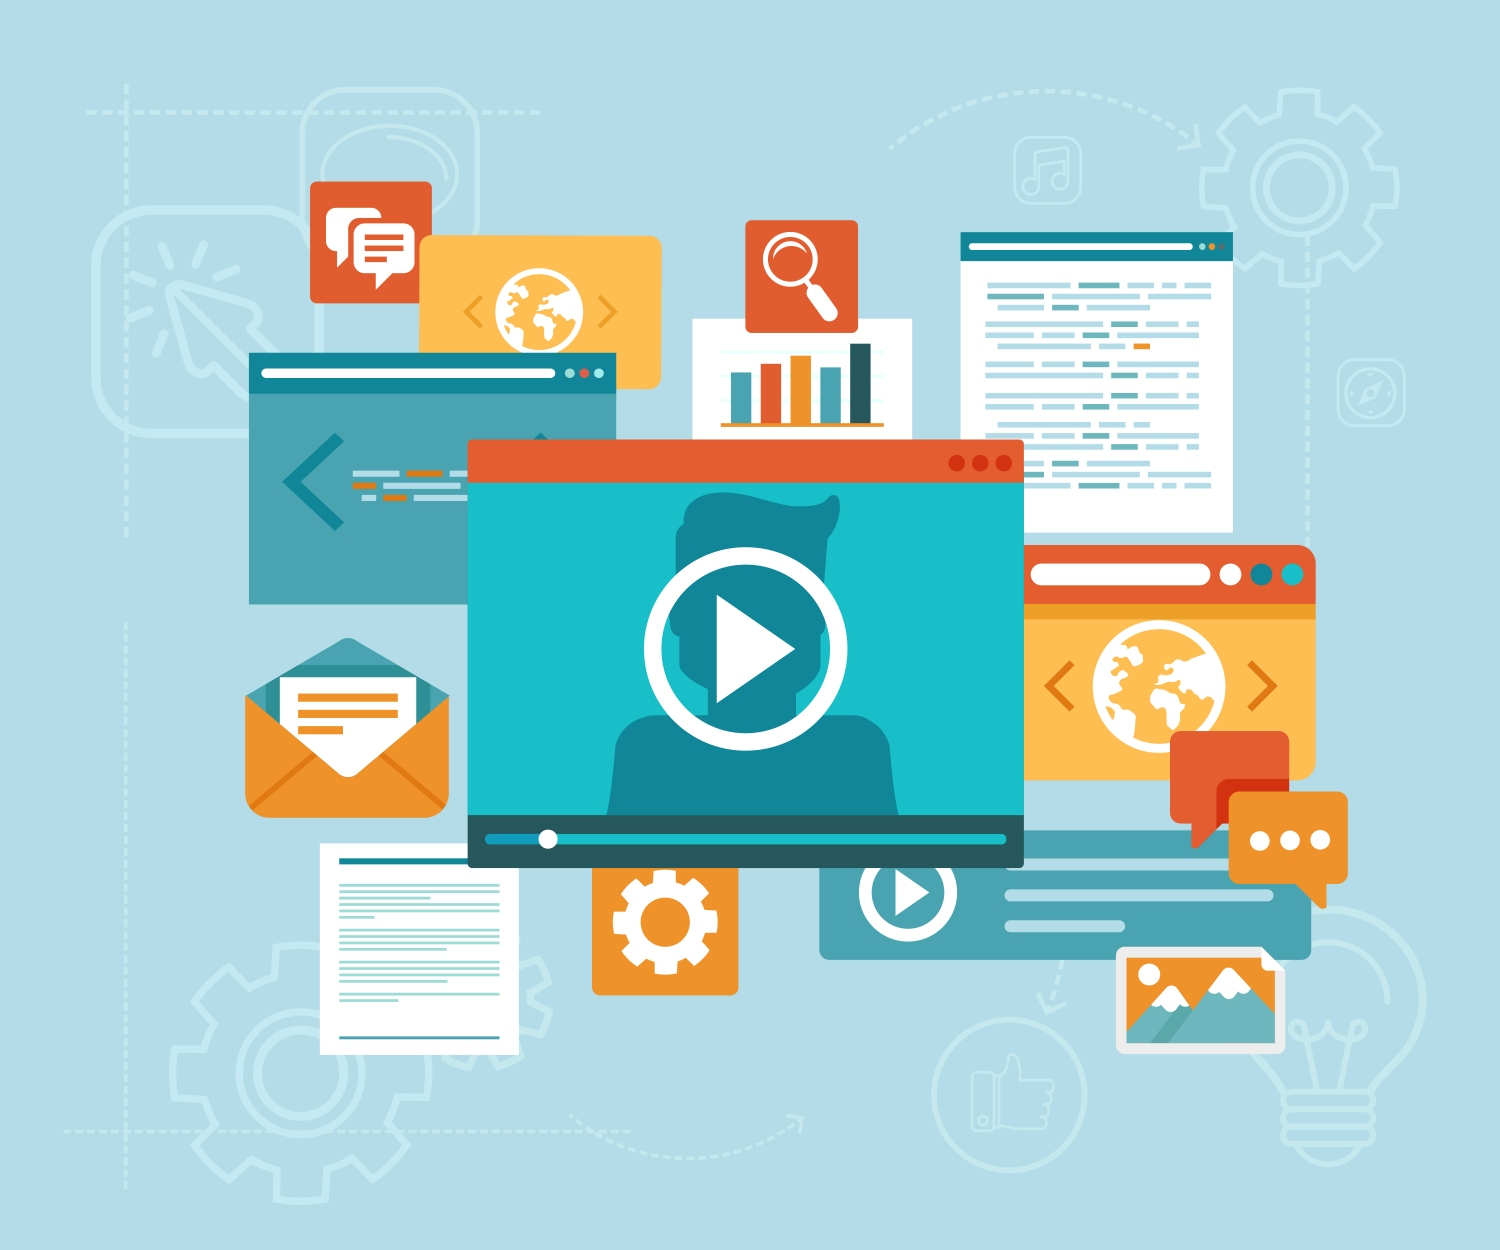 How To Make Use Of An Effective Video For Promoting Your Company